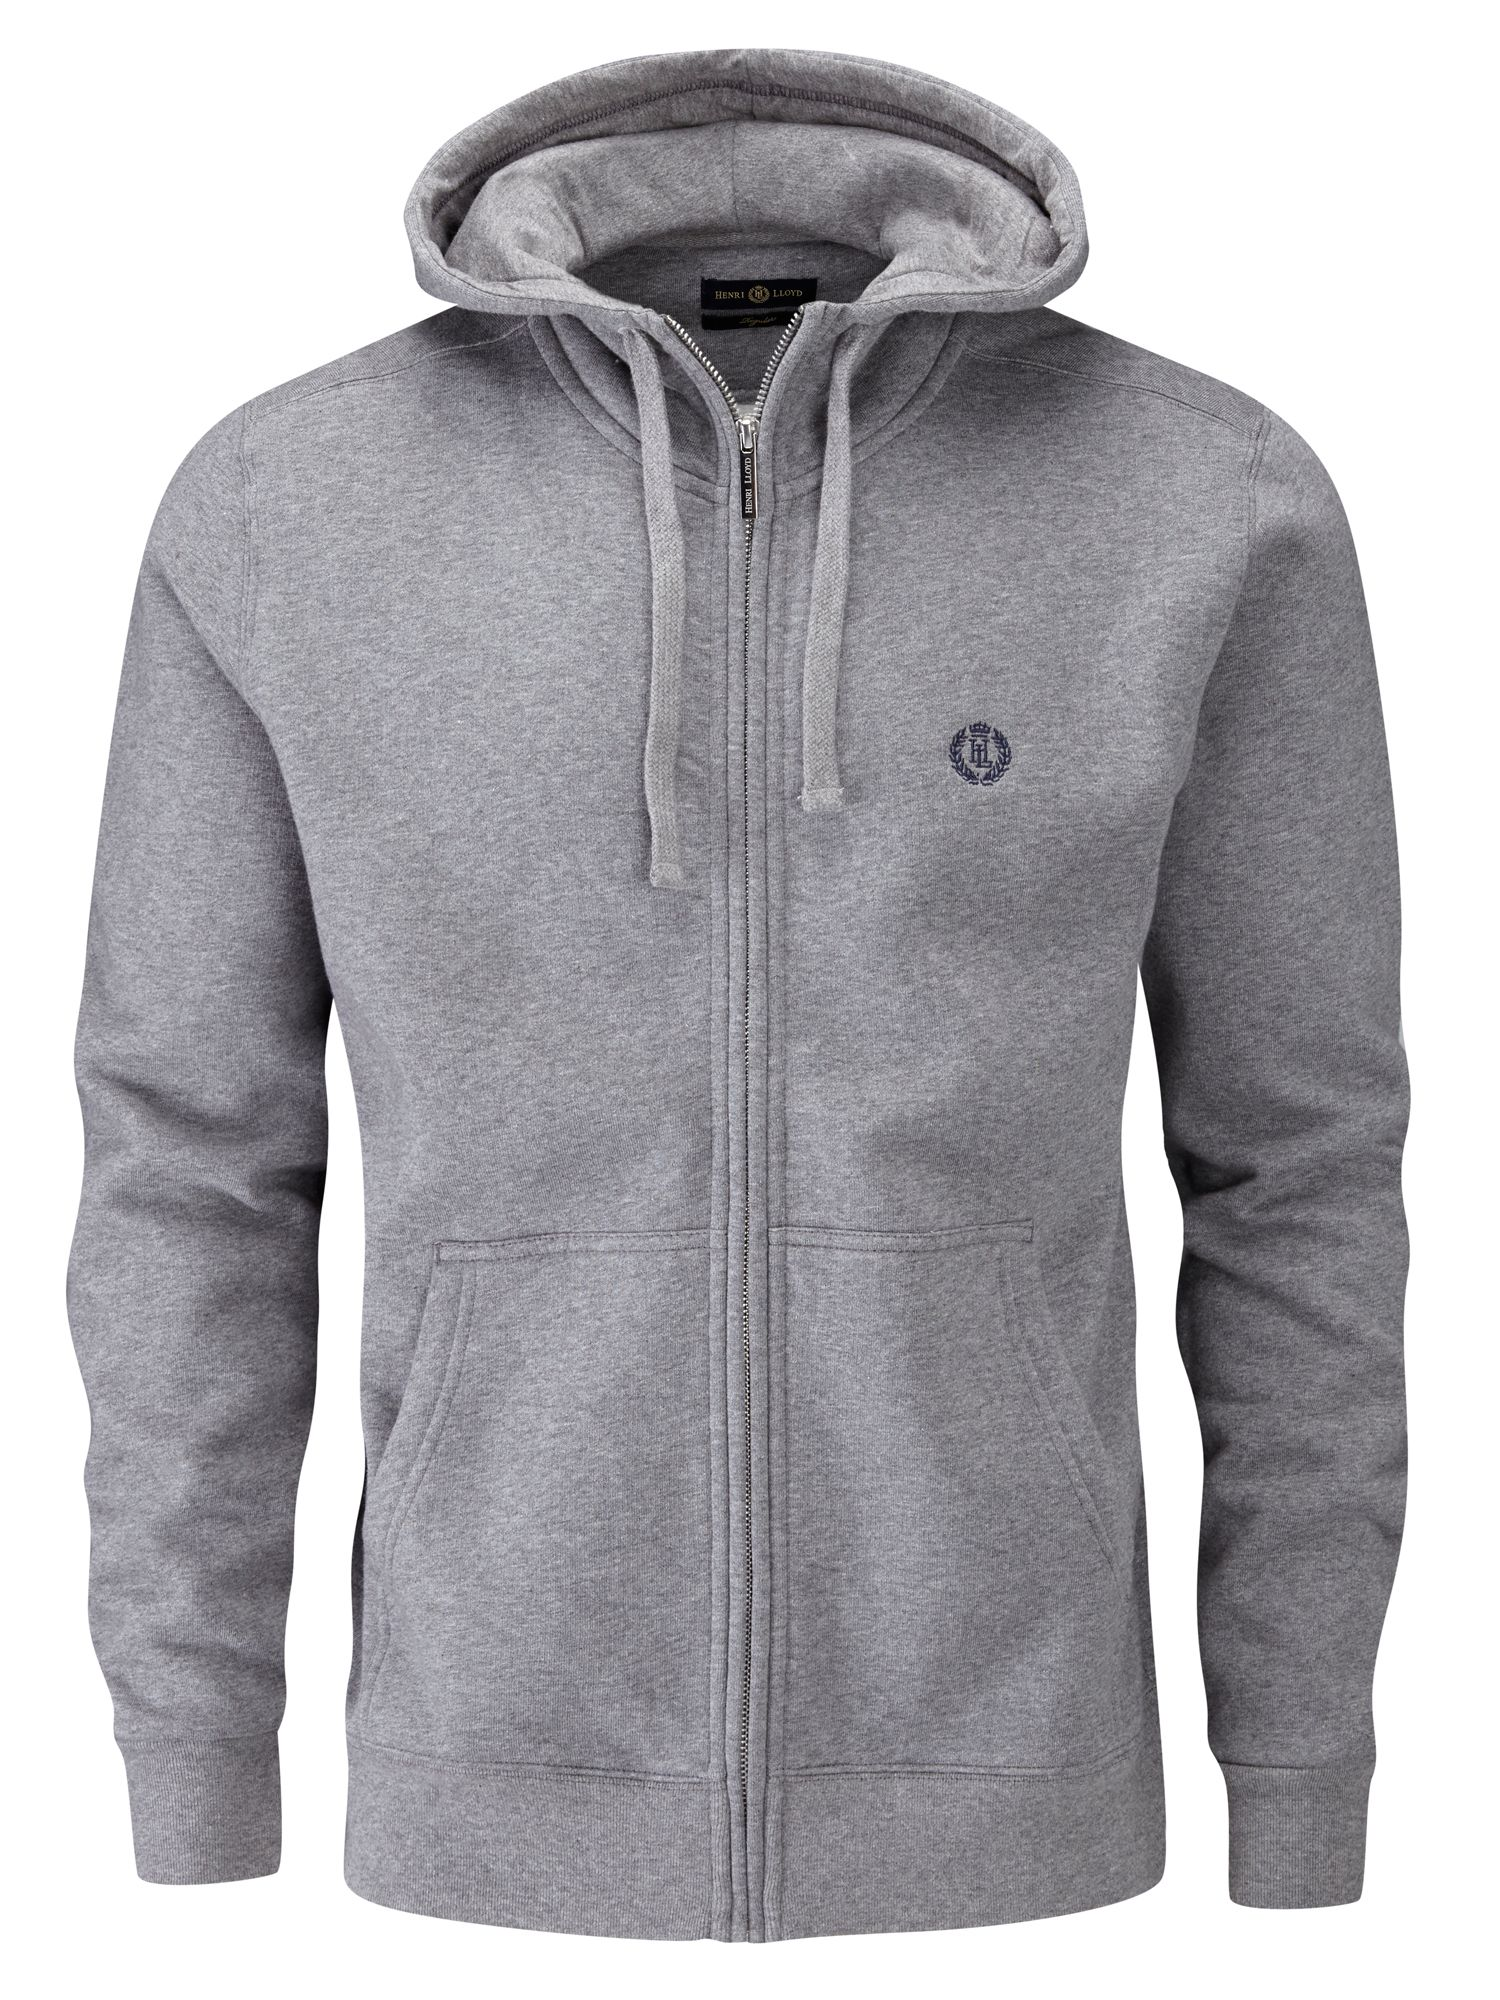 Men's Henri Lloyd Bredgar Full Zip Sweat, Grey Marl